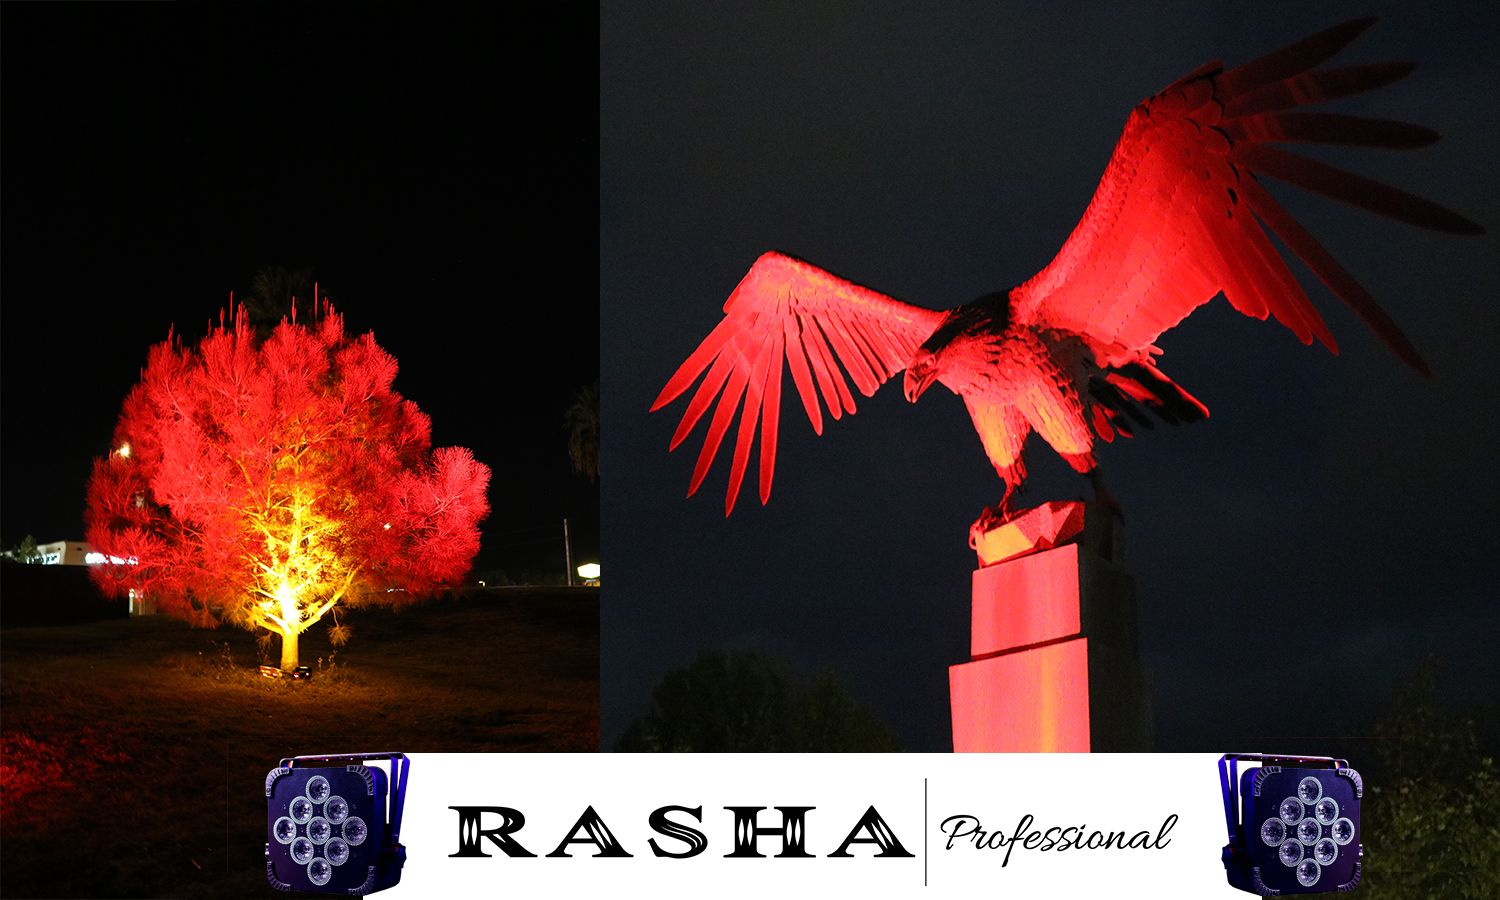 Lets Light Up your World  www.rashaprofessional.com  #rashaprofessional  #rasha #light #color #RGBA #stage #lighting #events #lights #concerts #theater #letslightupyourworld #led #uplights #dj #party #clubs #architecture #landscape #music  #wedding  #pinspots #summernamm #proudmember #namm